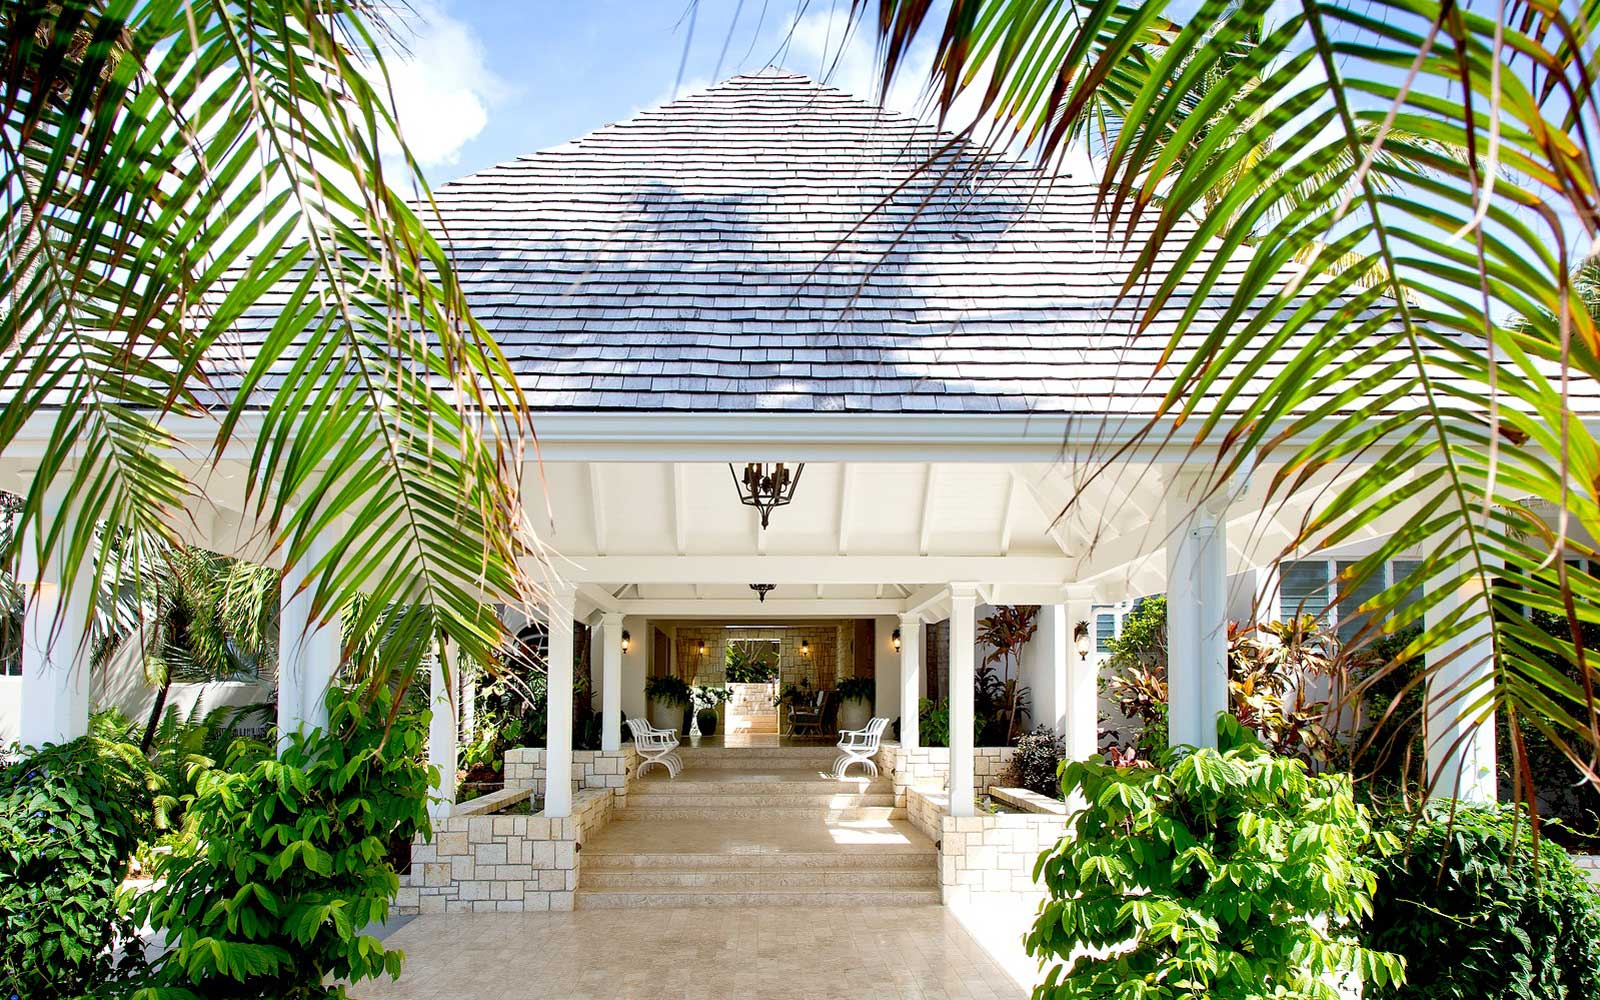 Renovated building at Curtain Bluff resort in Antigua